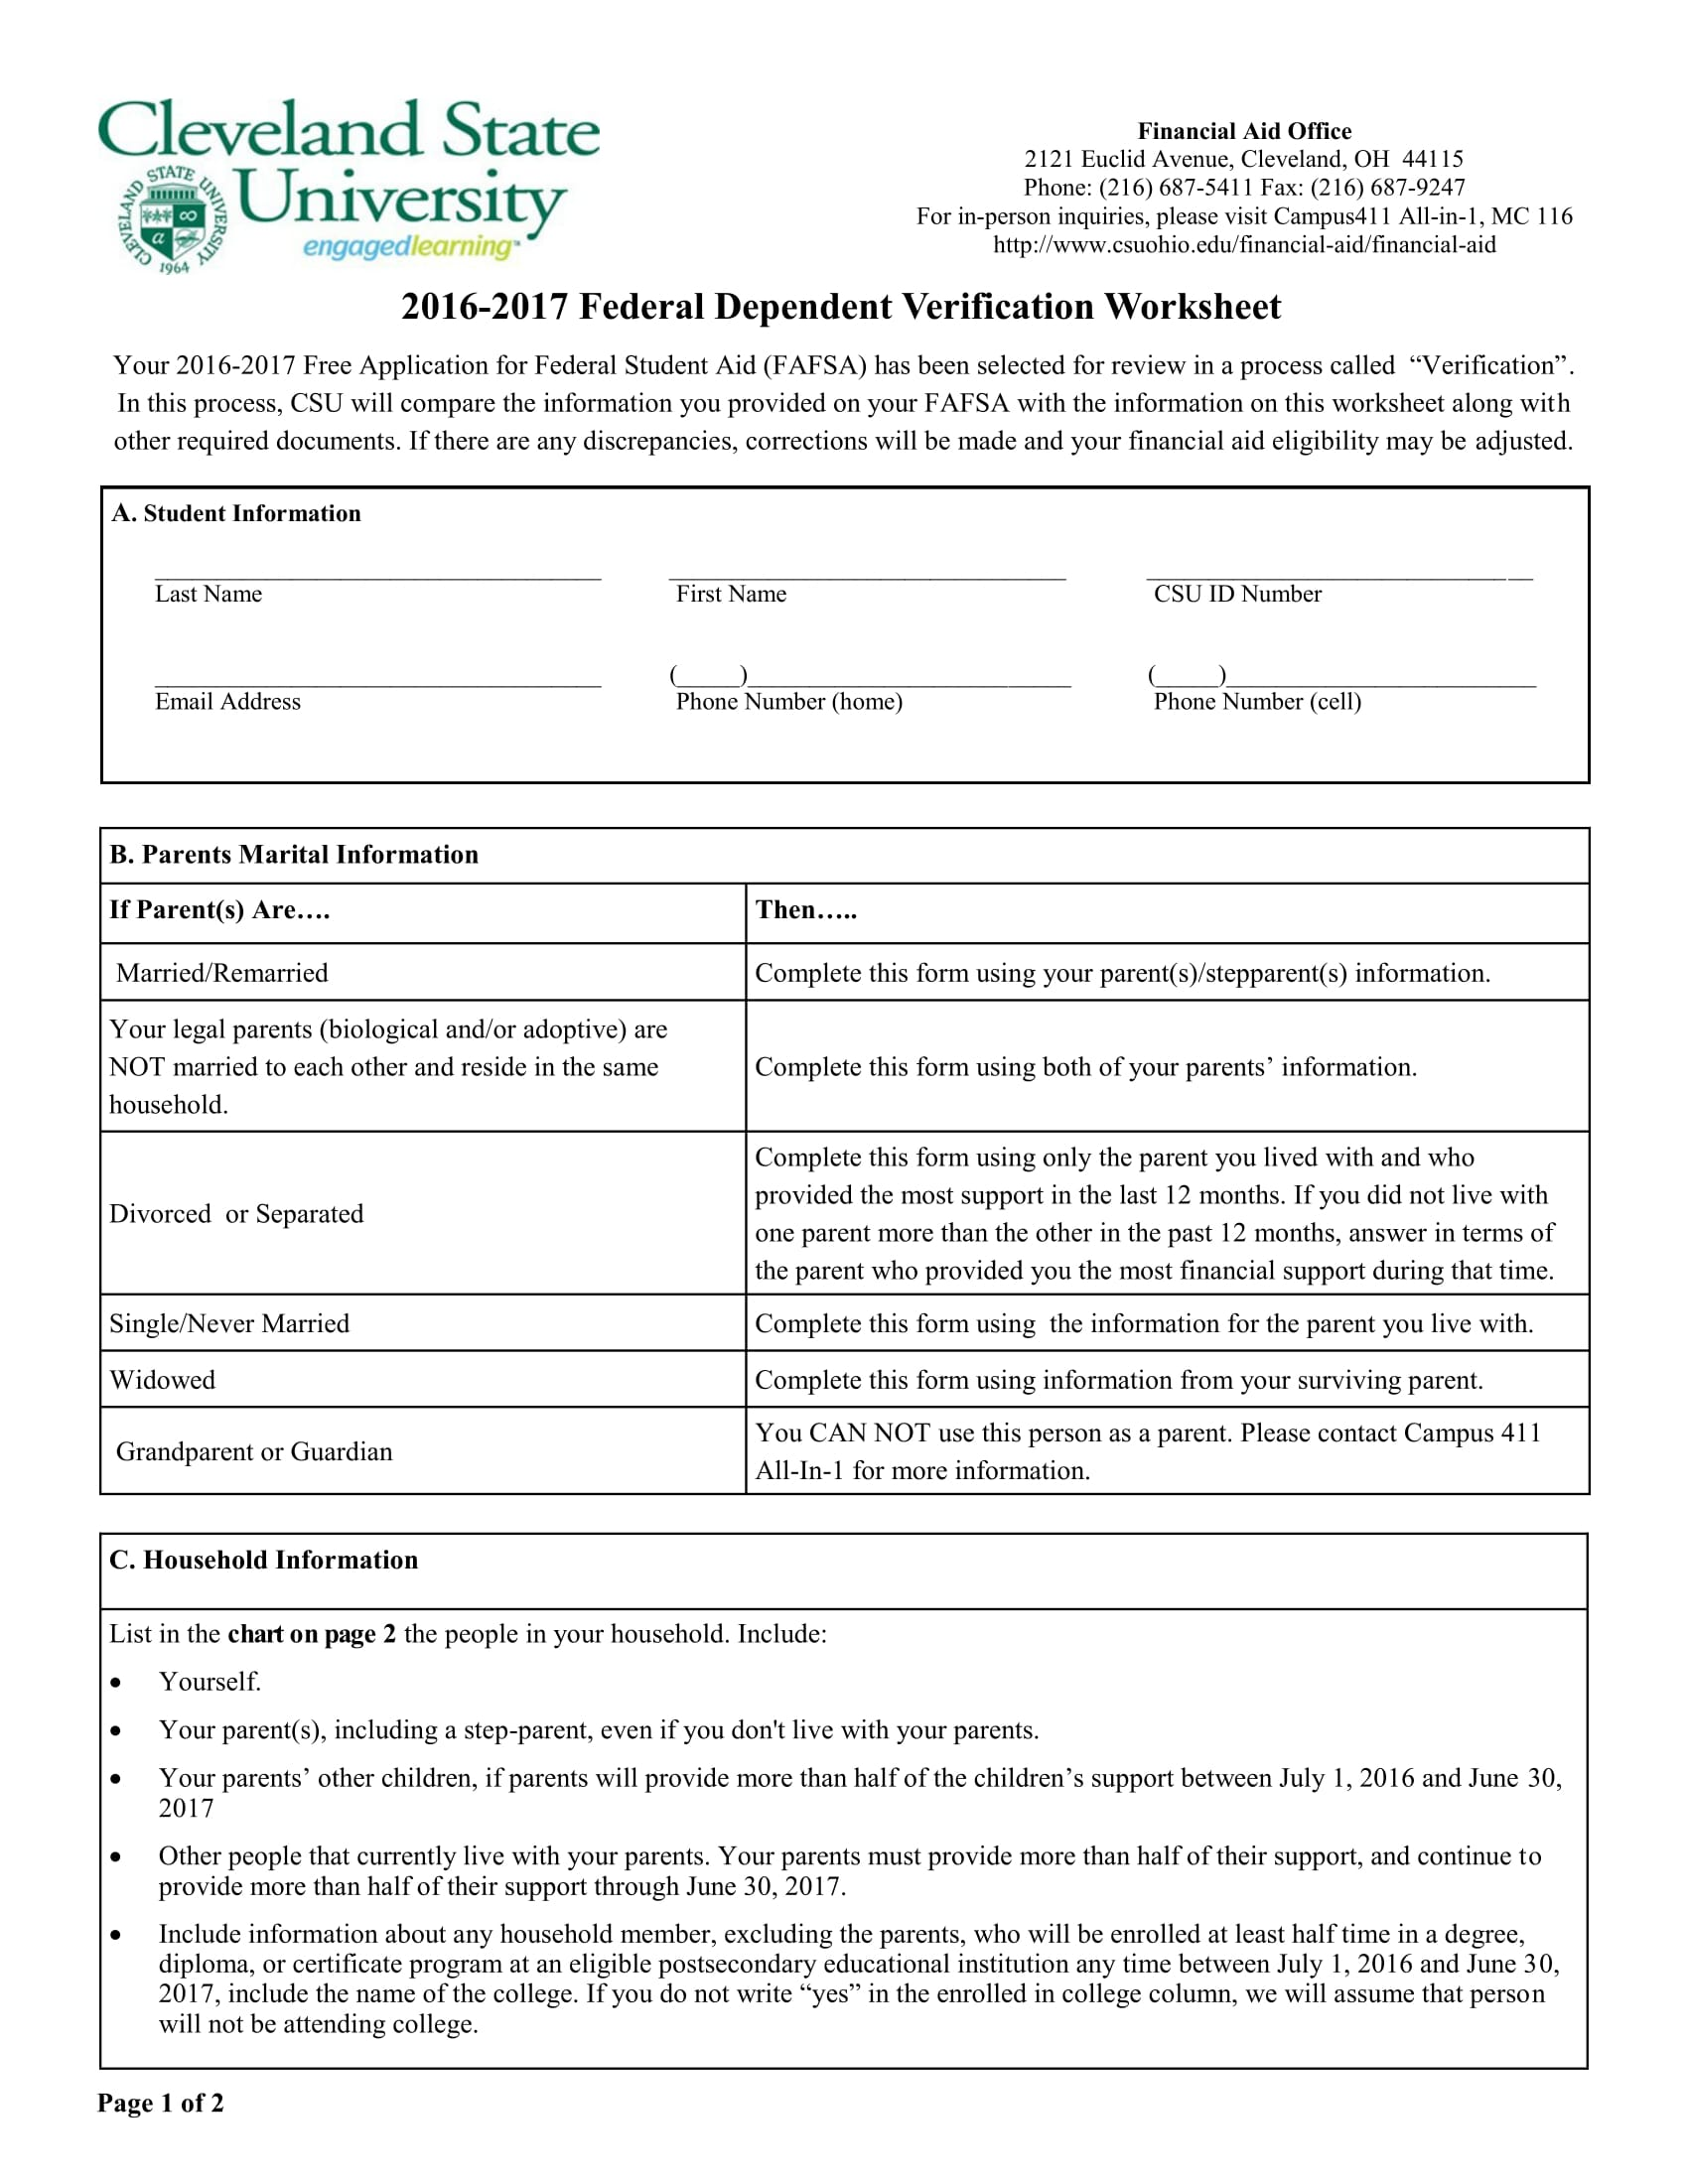 7 Steps In Filling Out A Dependent Verification Form